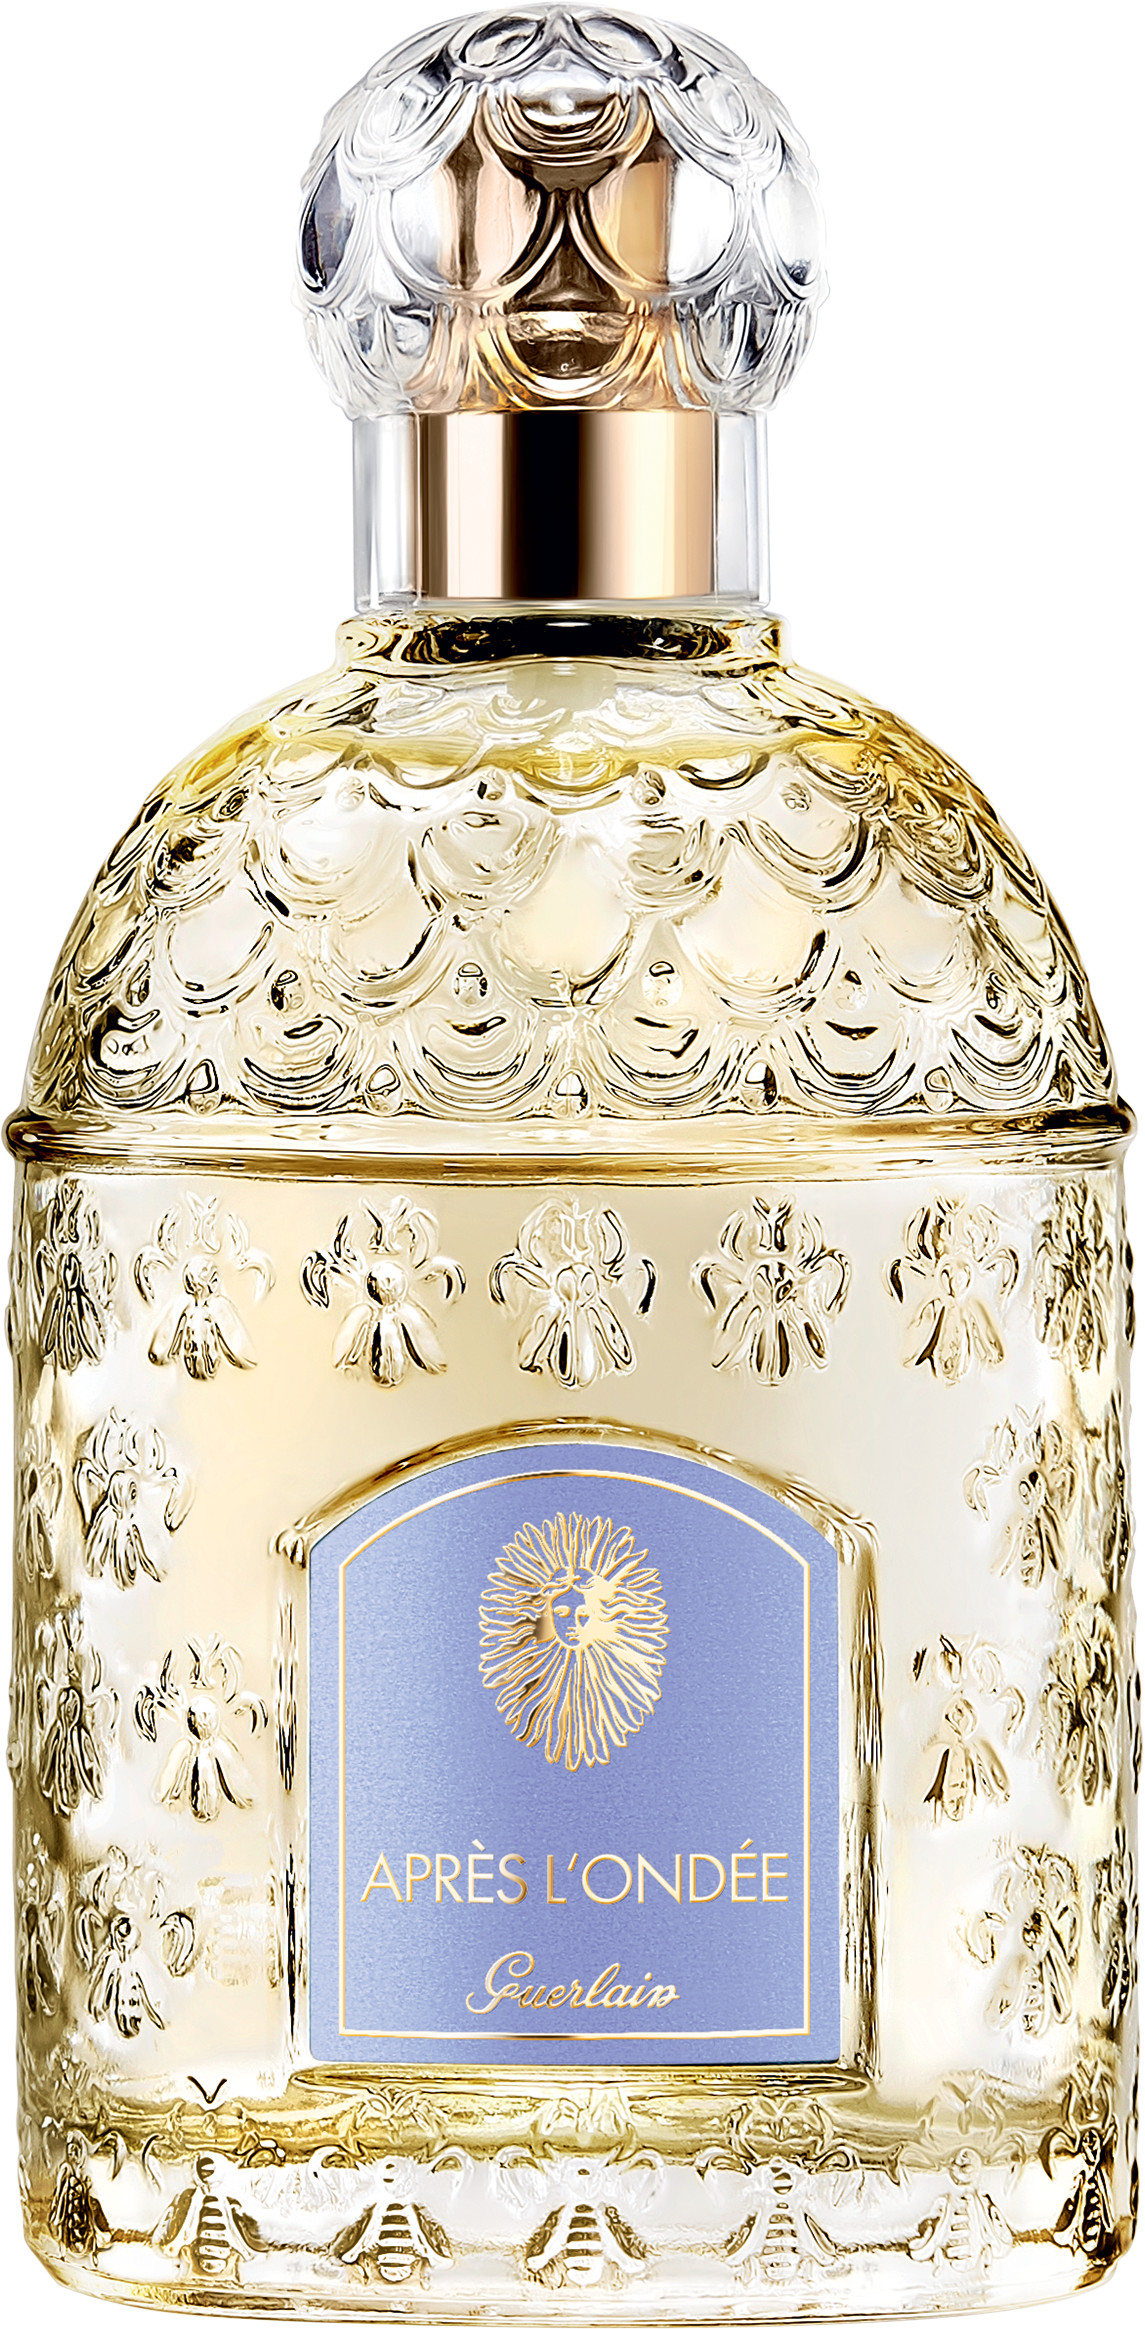 picture of Guerlain's Apres L'Ondee perfume